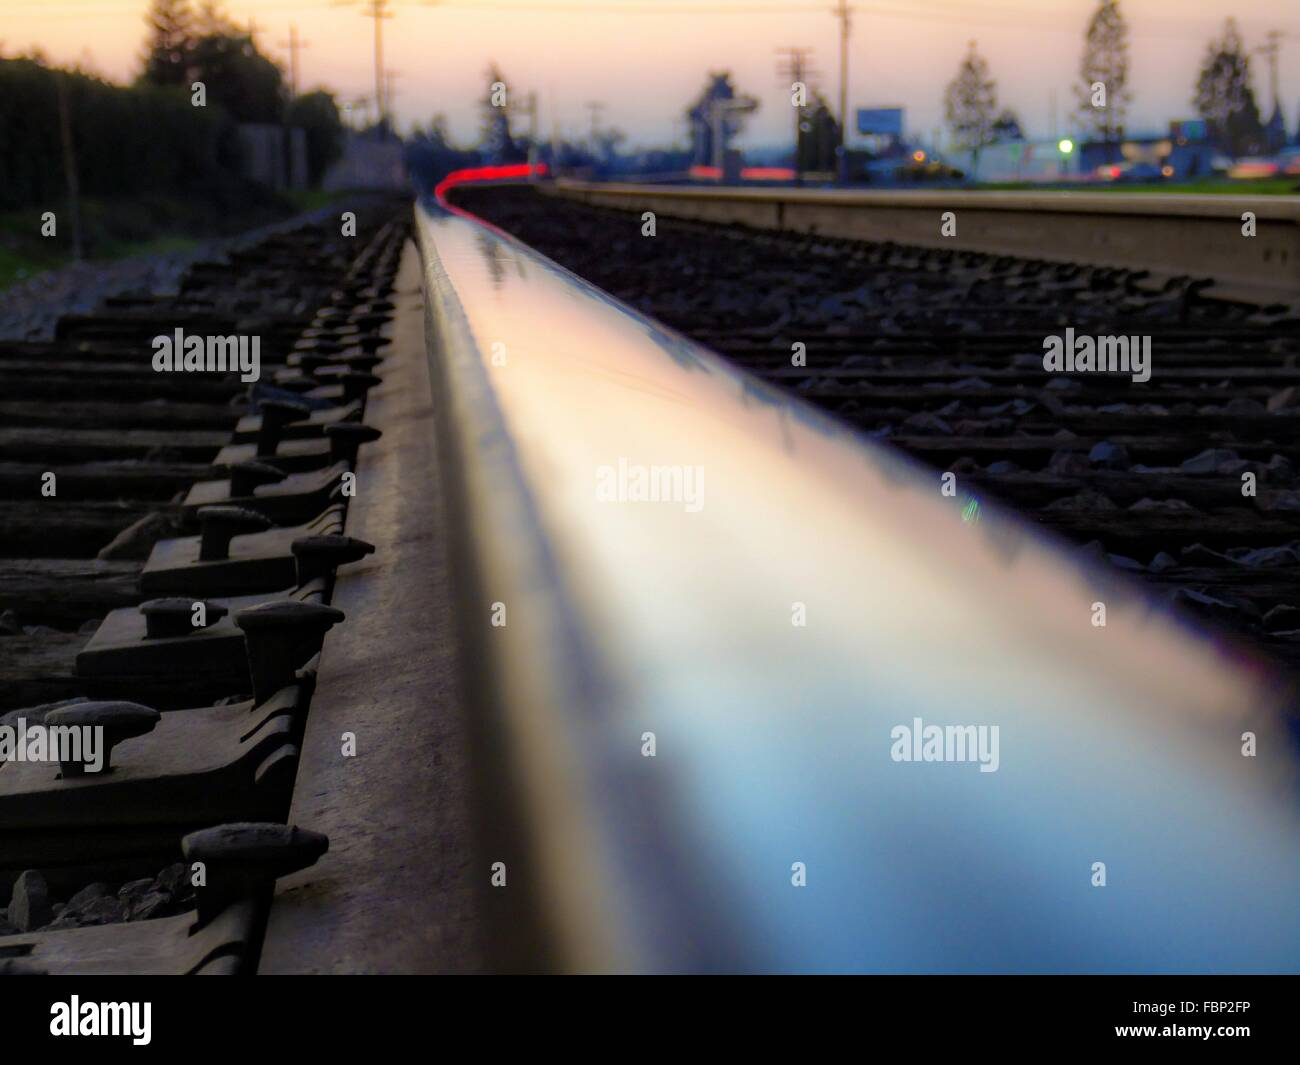 Surface Level Of Railway Track At Dusk - Stock Image